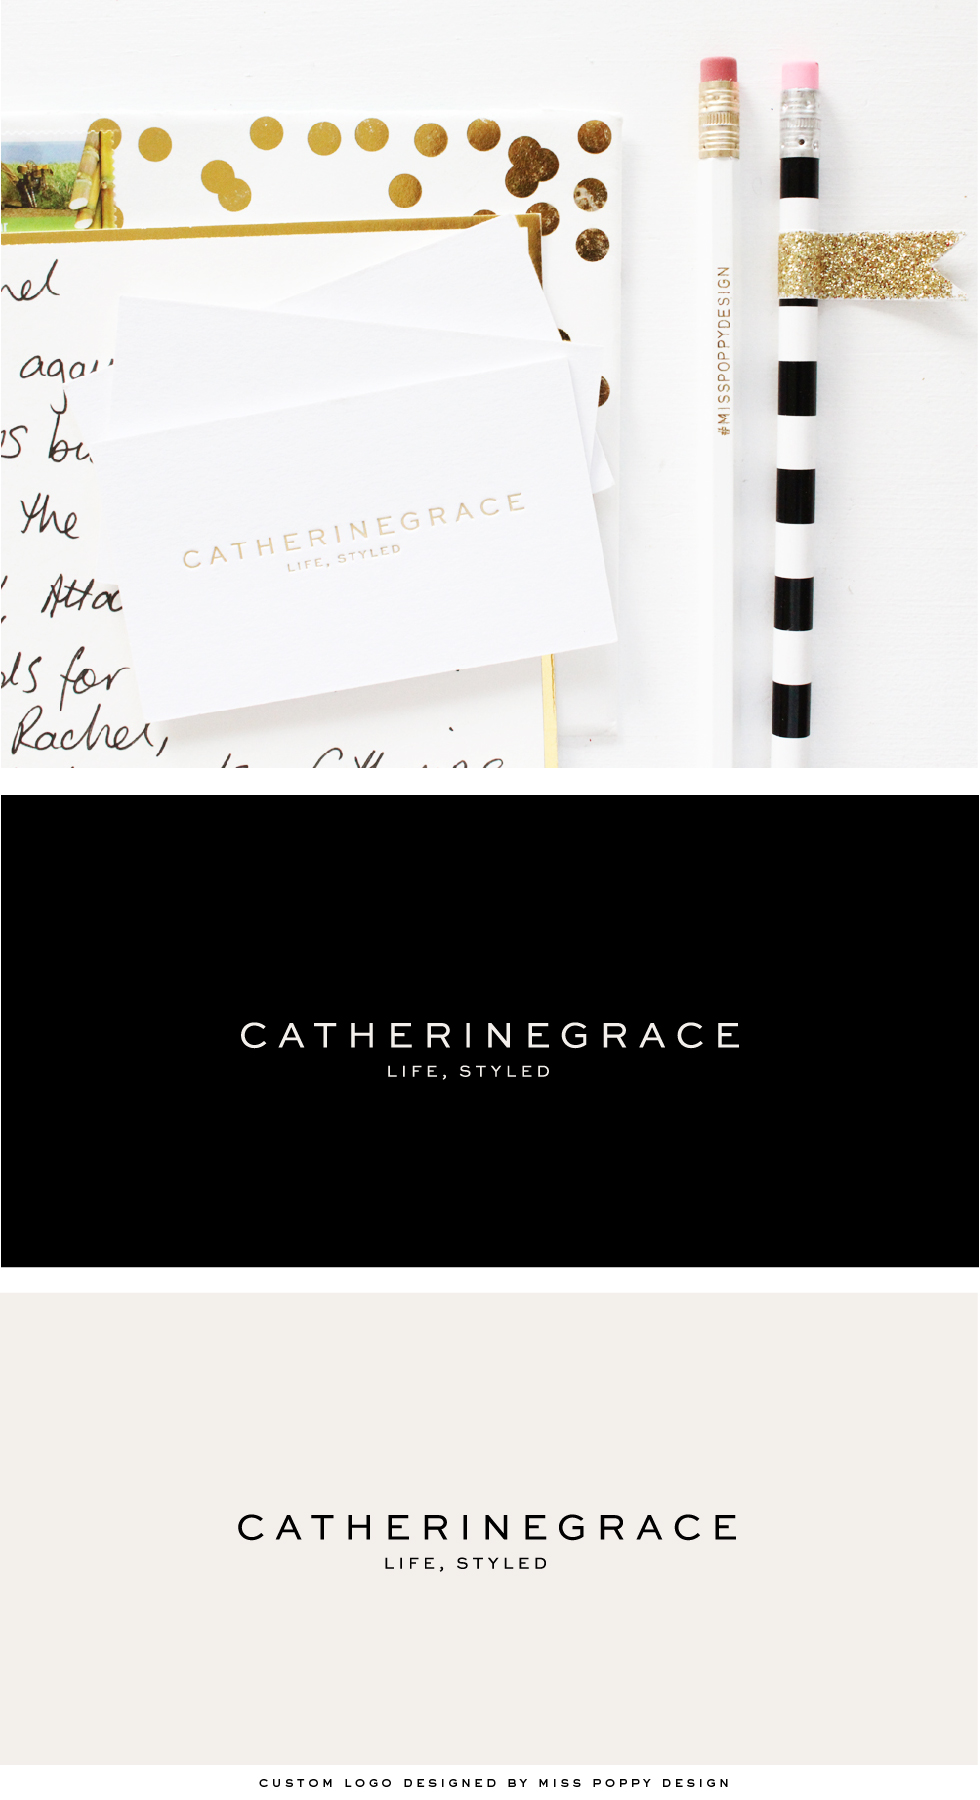 Miss Poppy Design: Custom Logo Design and gold foil business cards designed for CATHERINEGRACE.